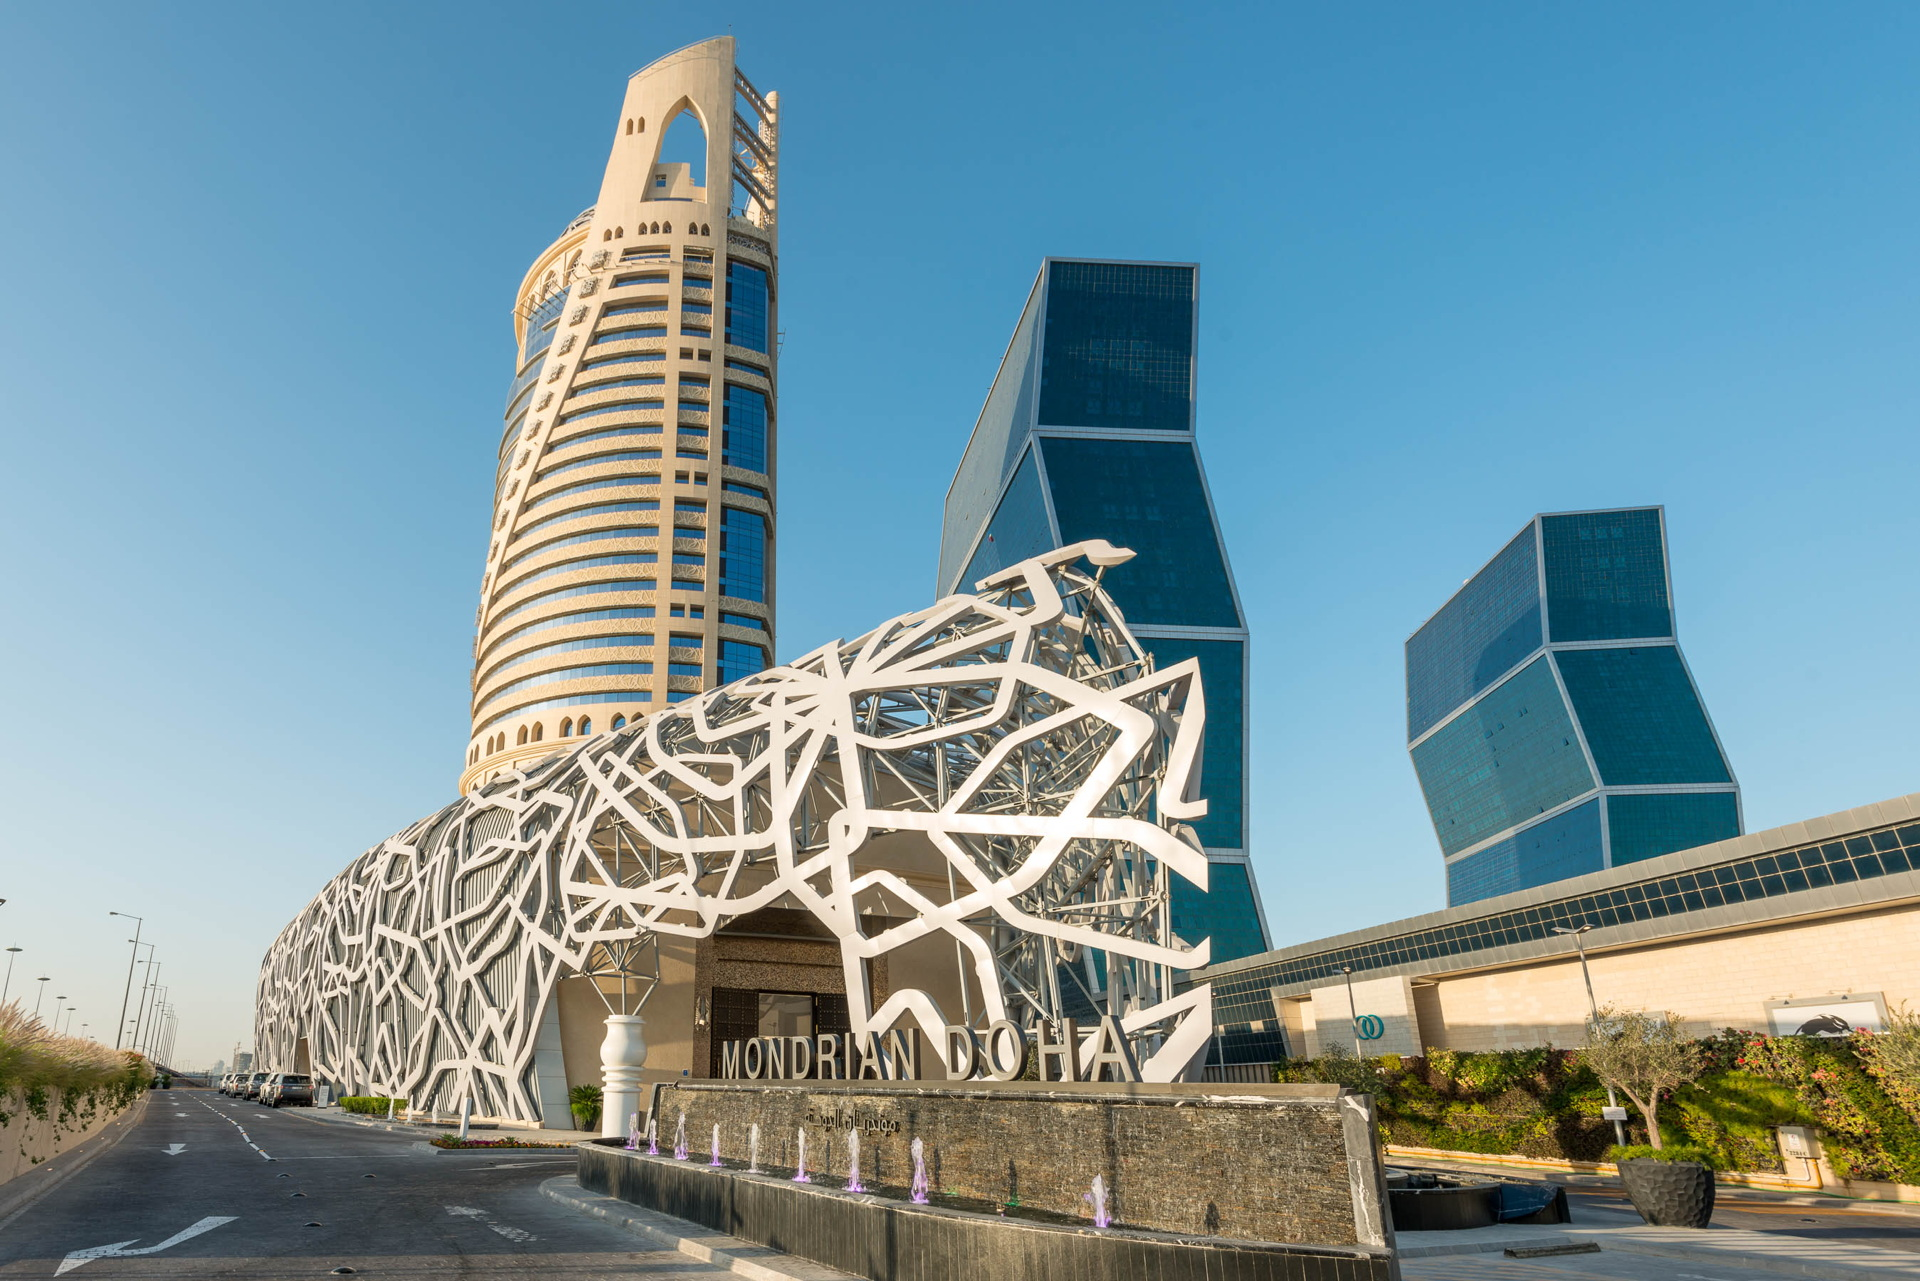 South West Architecture Con Fmg Mondrian Doha In Qatar